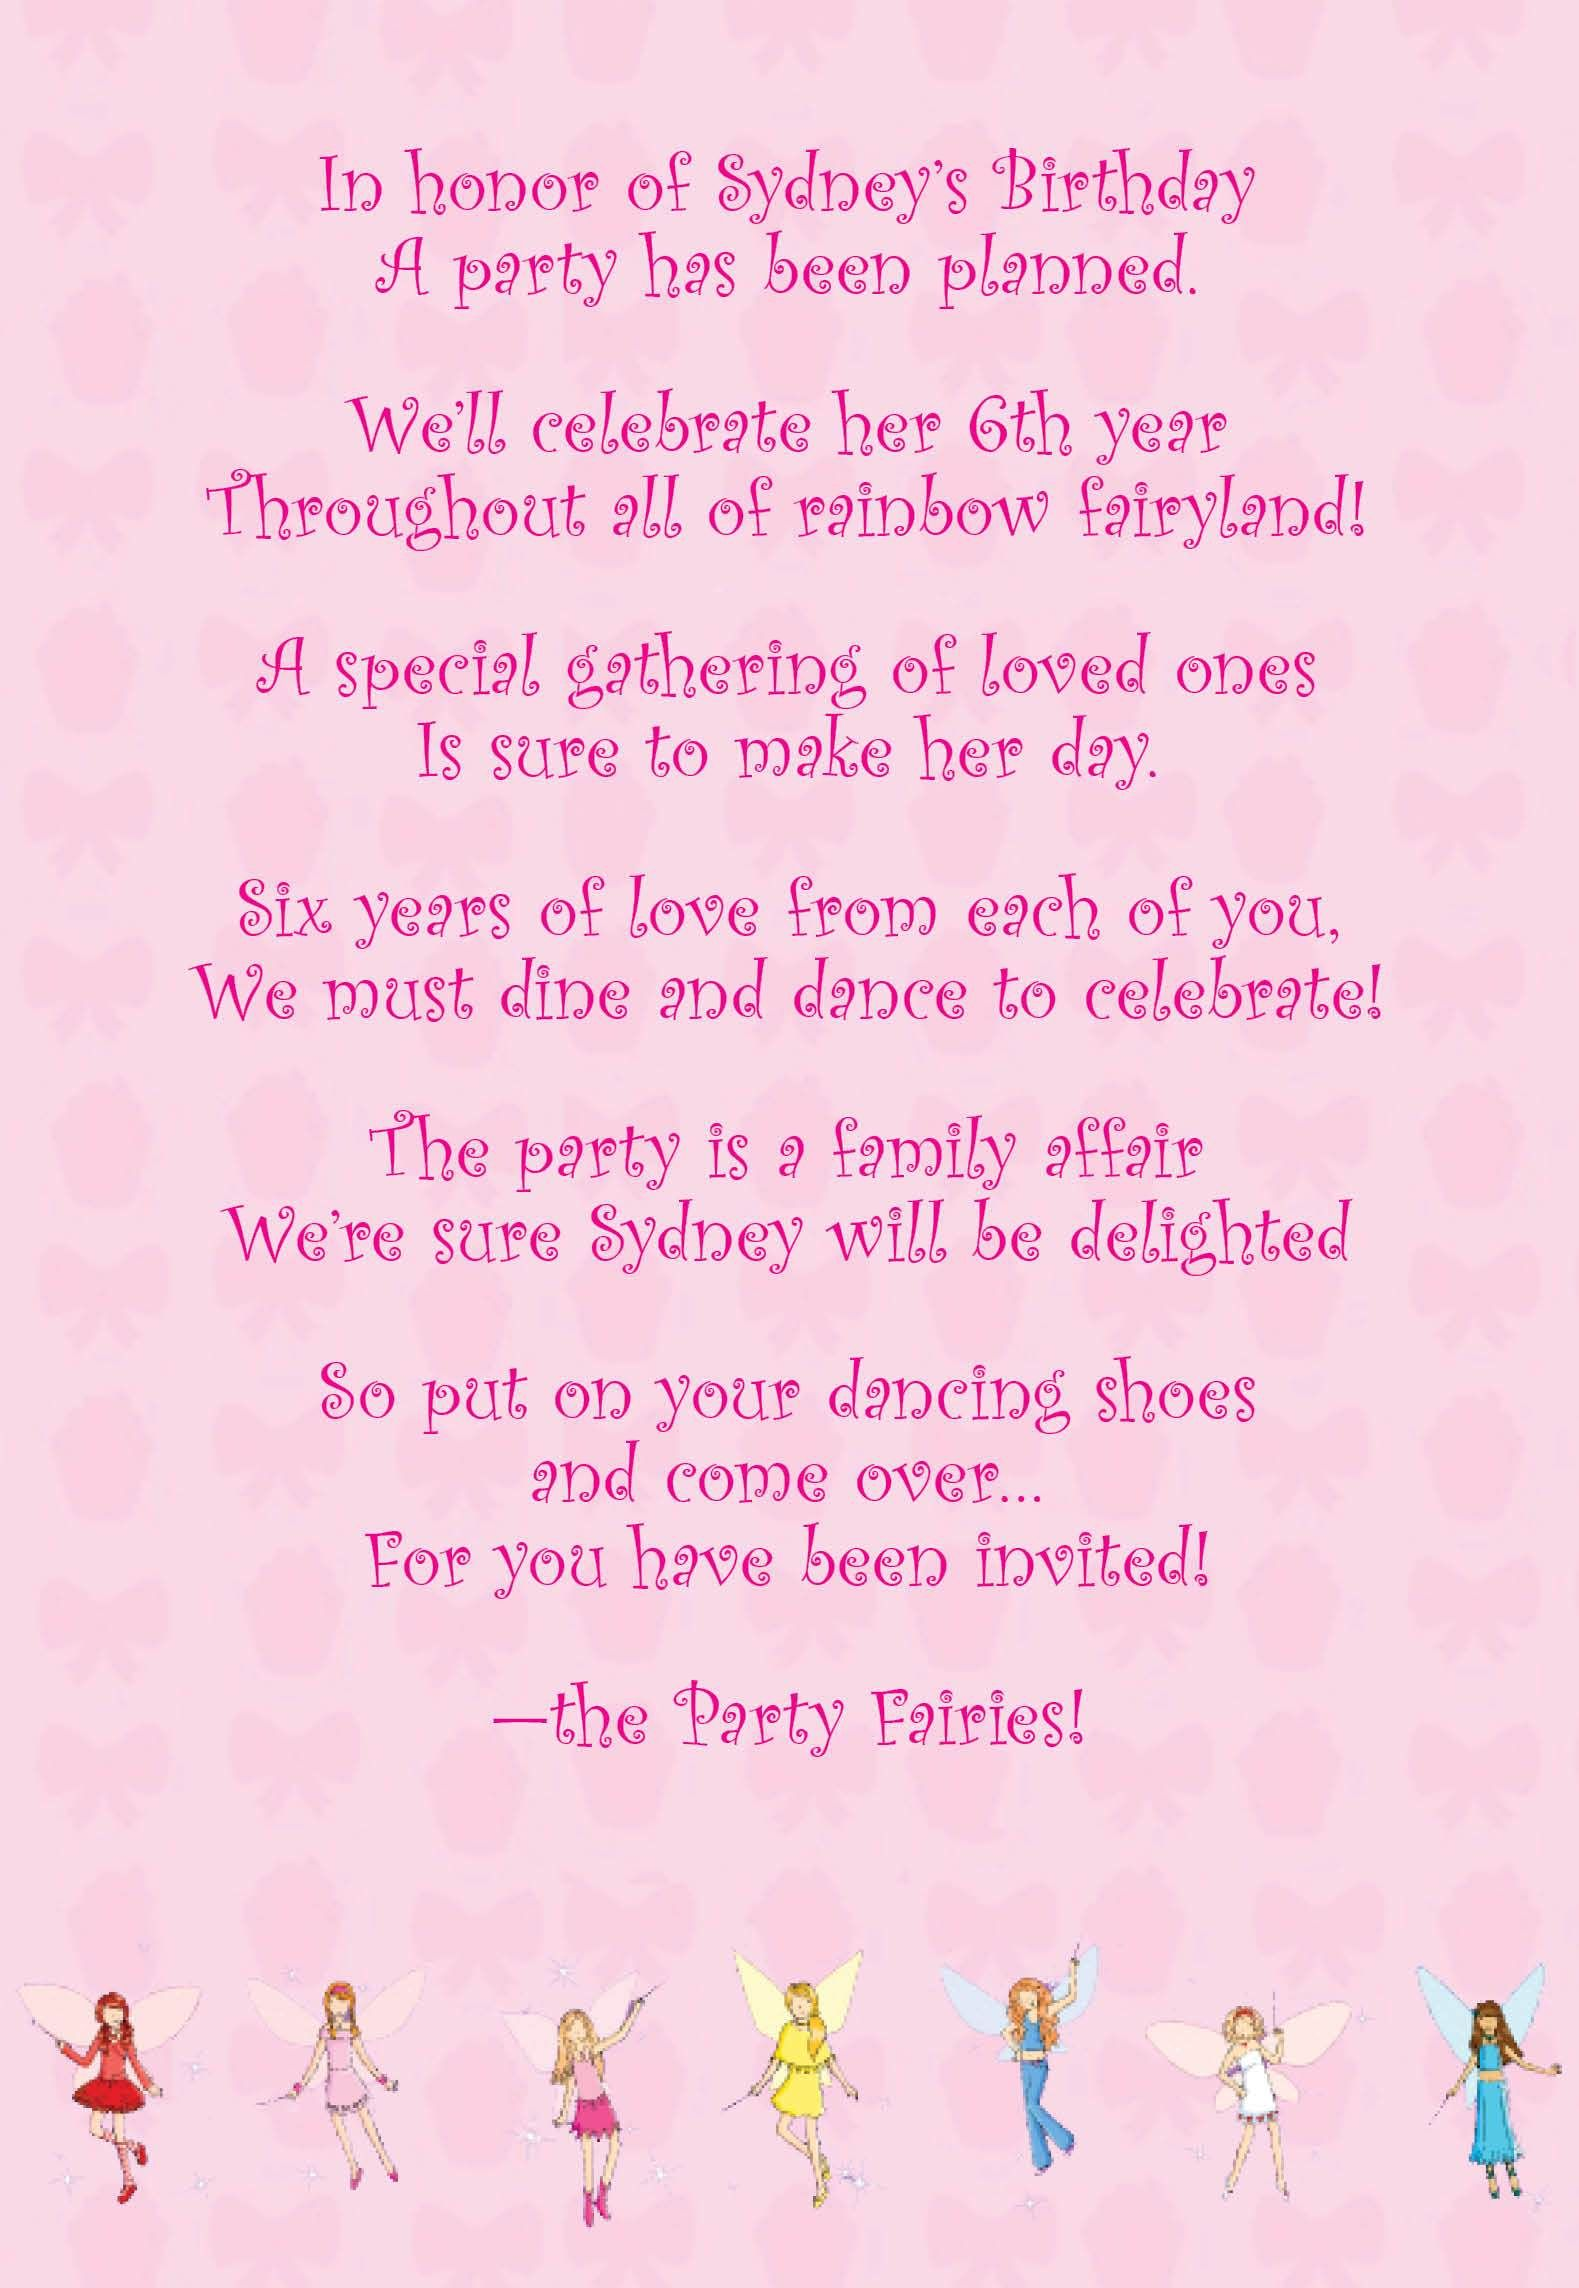 I Used The Format Of The Prelude Poem For The Invitation Language